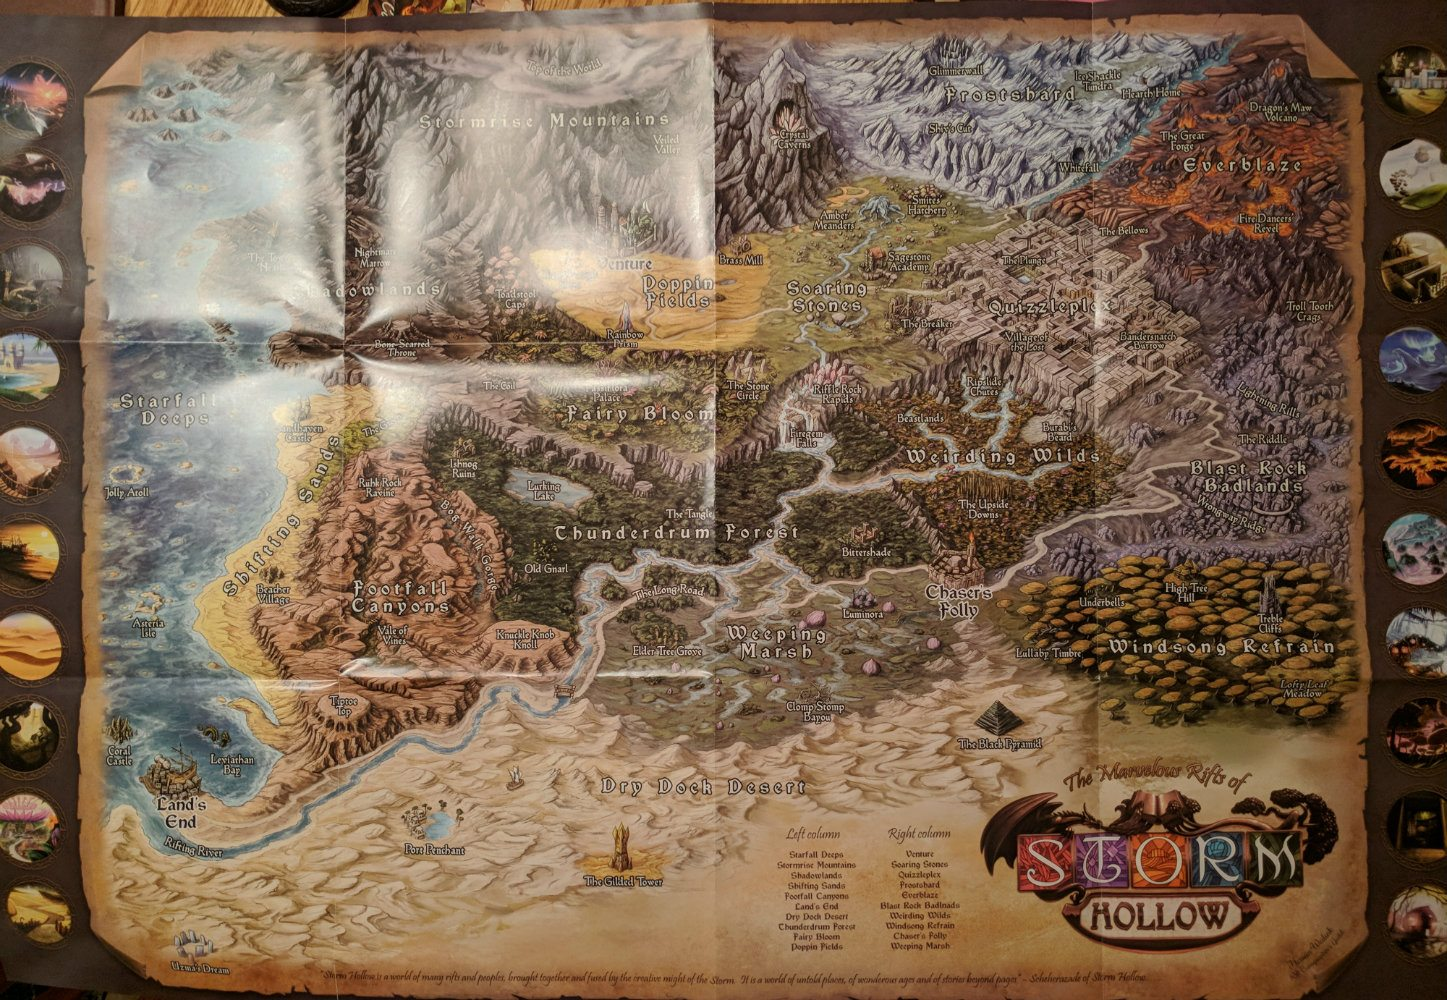 Storm Hollow Story Souvenirs Map Poster